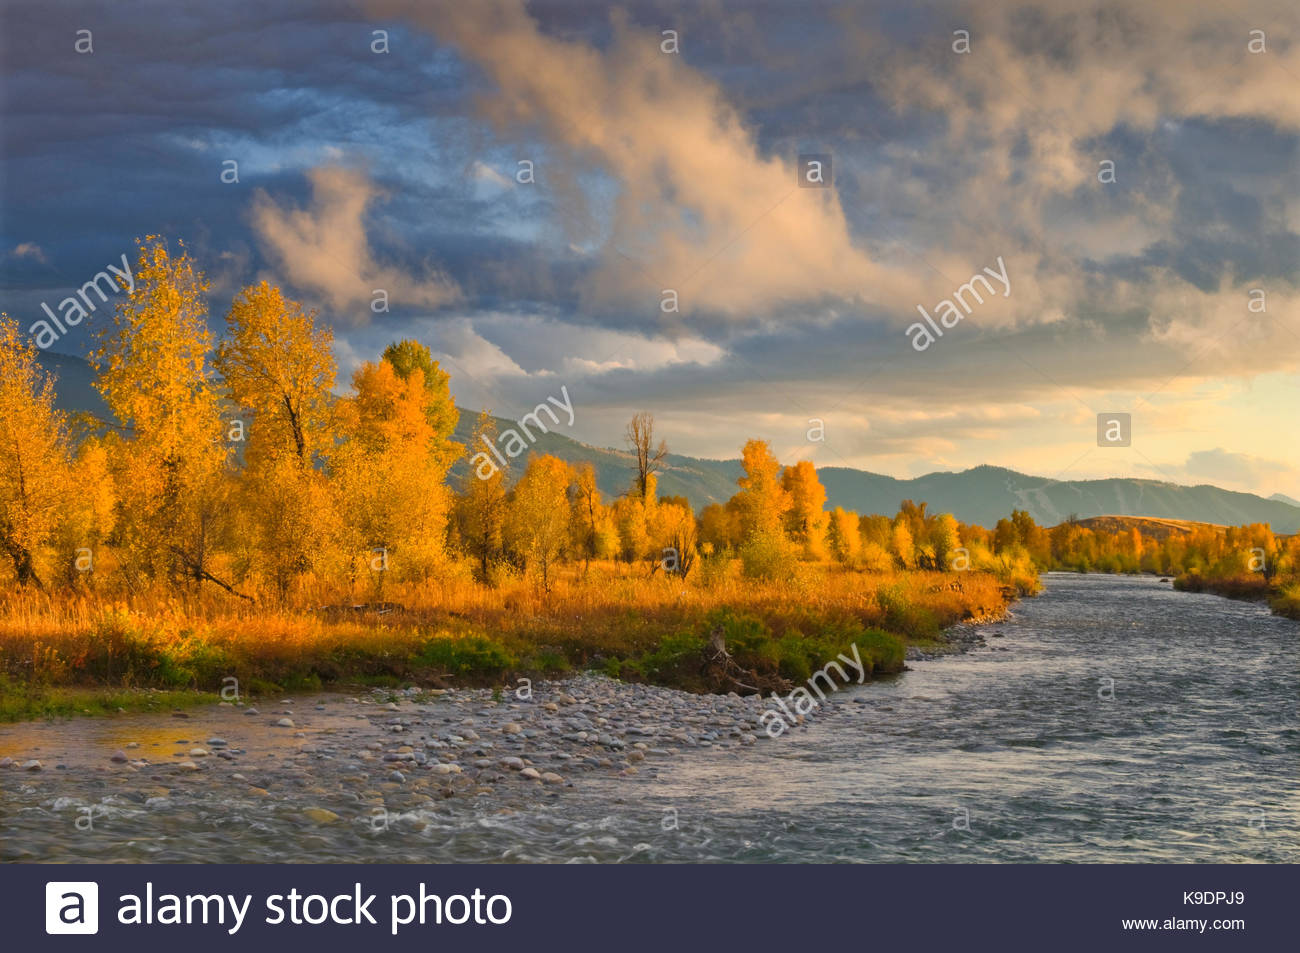 The Gros Ventre River, Narrowleaf Cottonwood, and Sunset Light in Fall, Grand Teton National Park, Wyoming - Stock Image